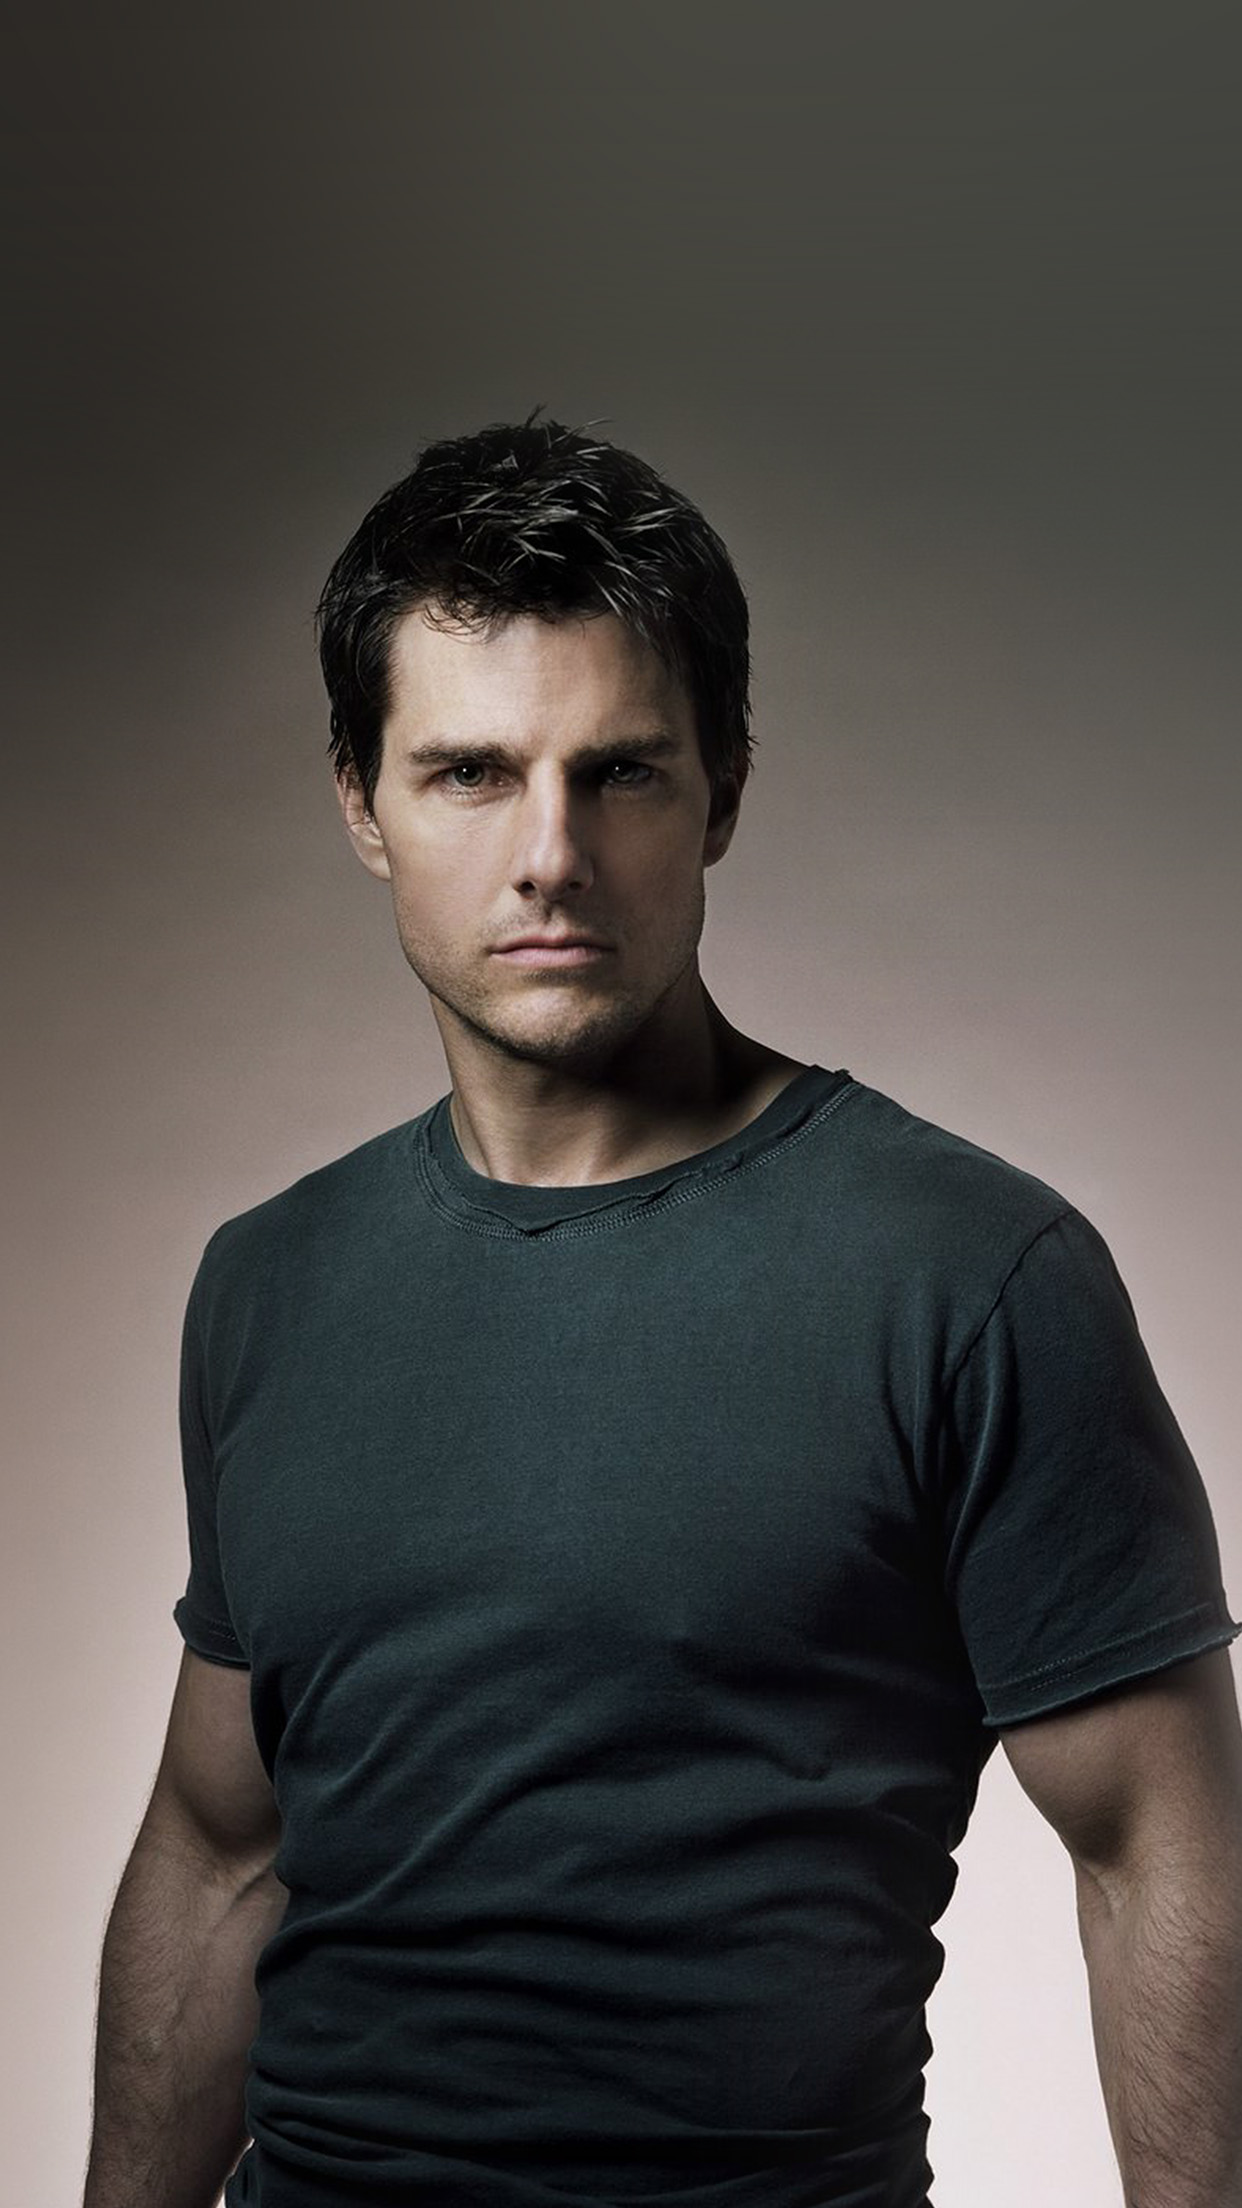 Car Hd Wallpaper For Iphone 6 Hk89 Tom Cruise Film Star Actor Celebrity Wallpaper